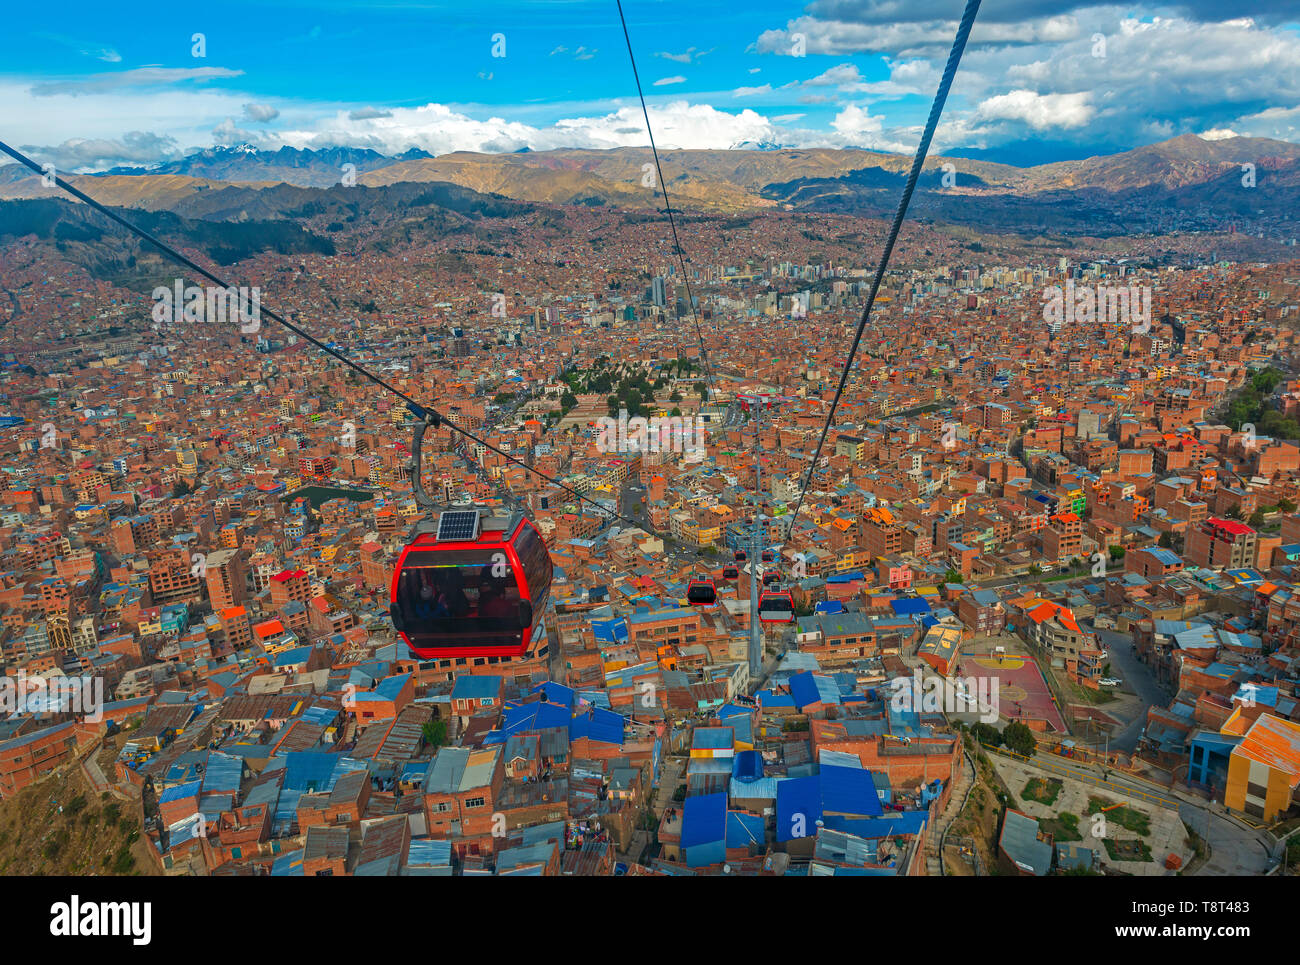 Cityscape of La Paz city and the new public transport system of Cable Cars named Teleferico, the snowcapped Andes mountain peaks in the back, Bolivia. Stock Photo